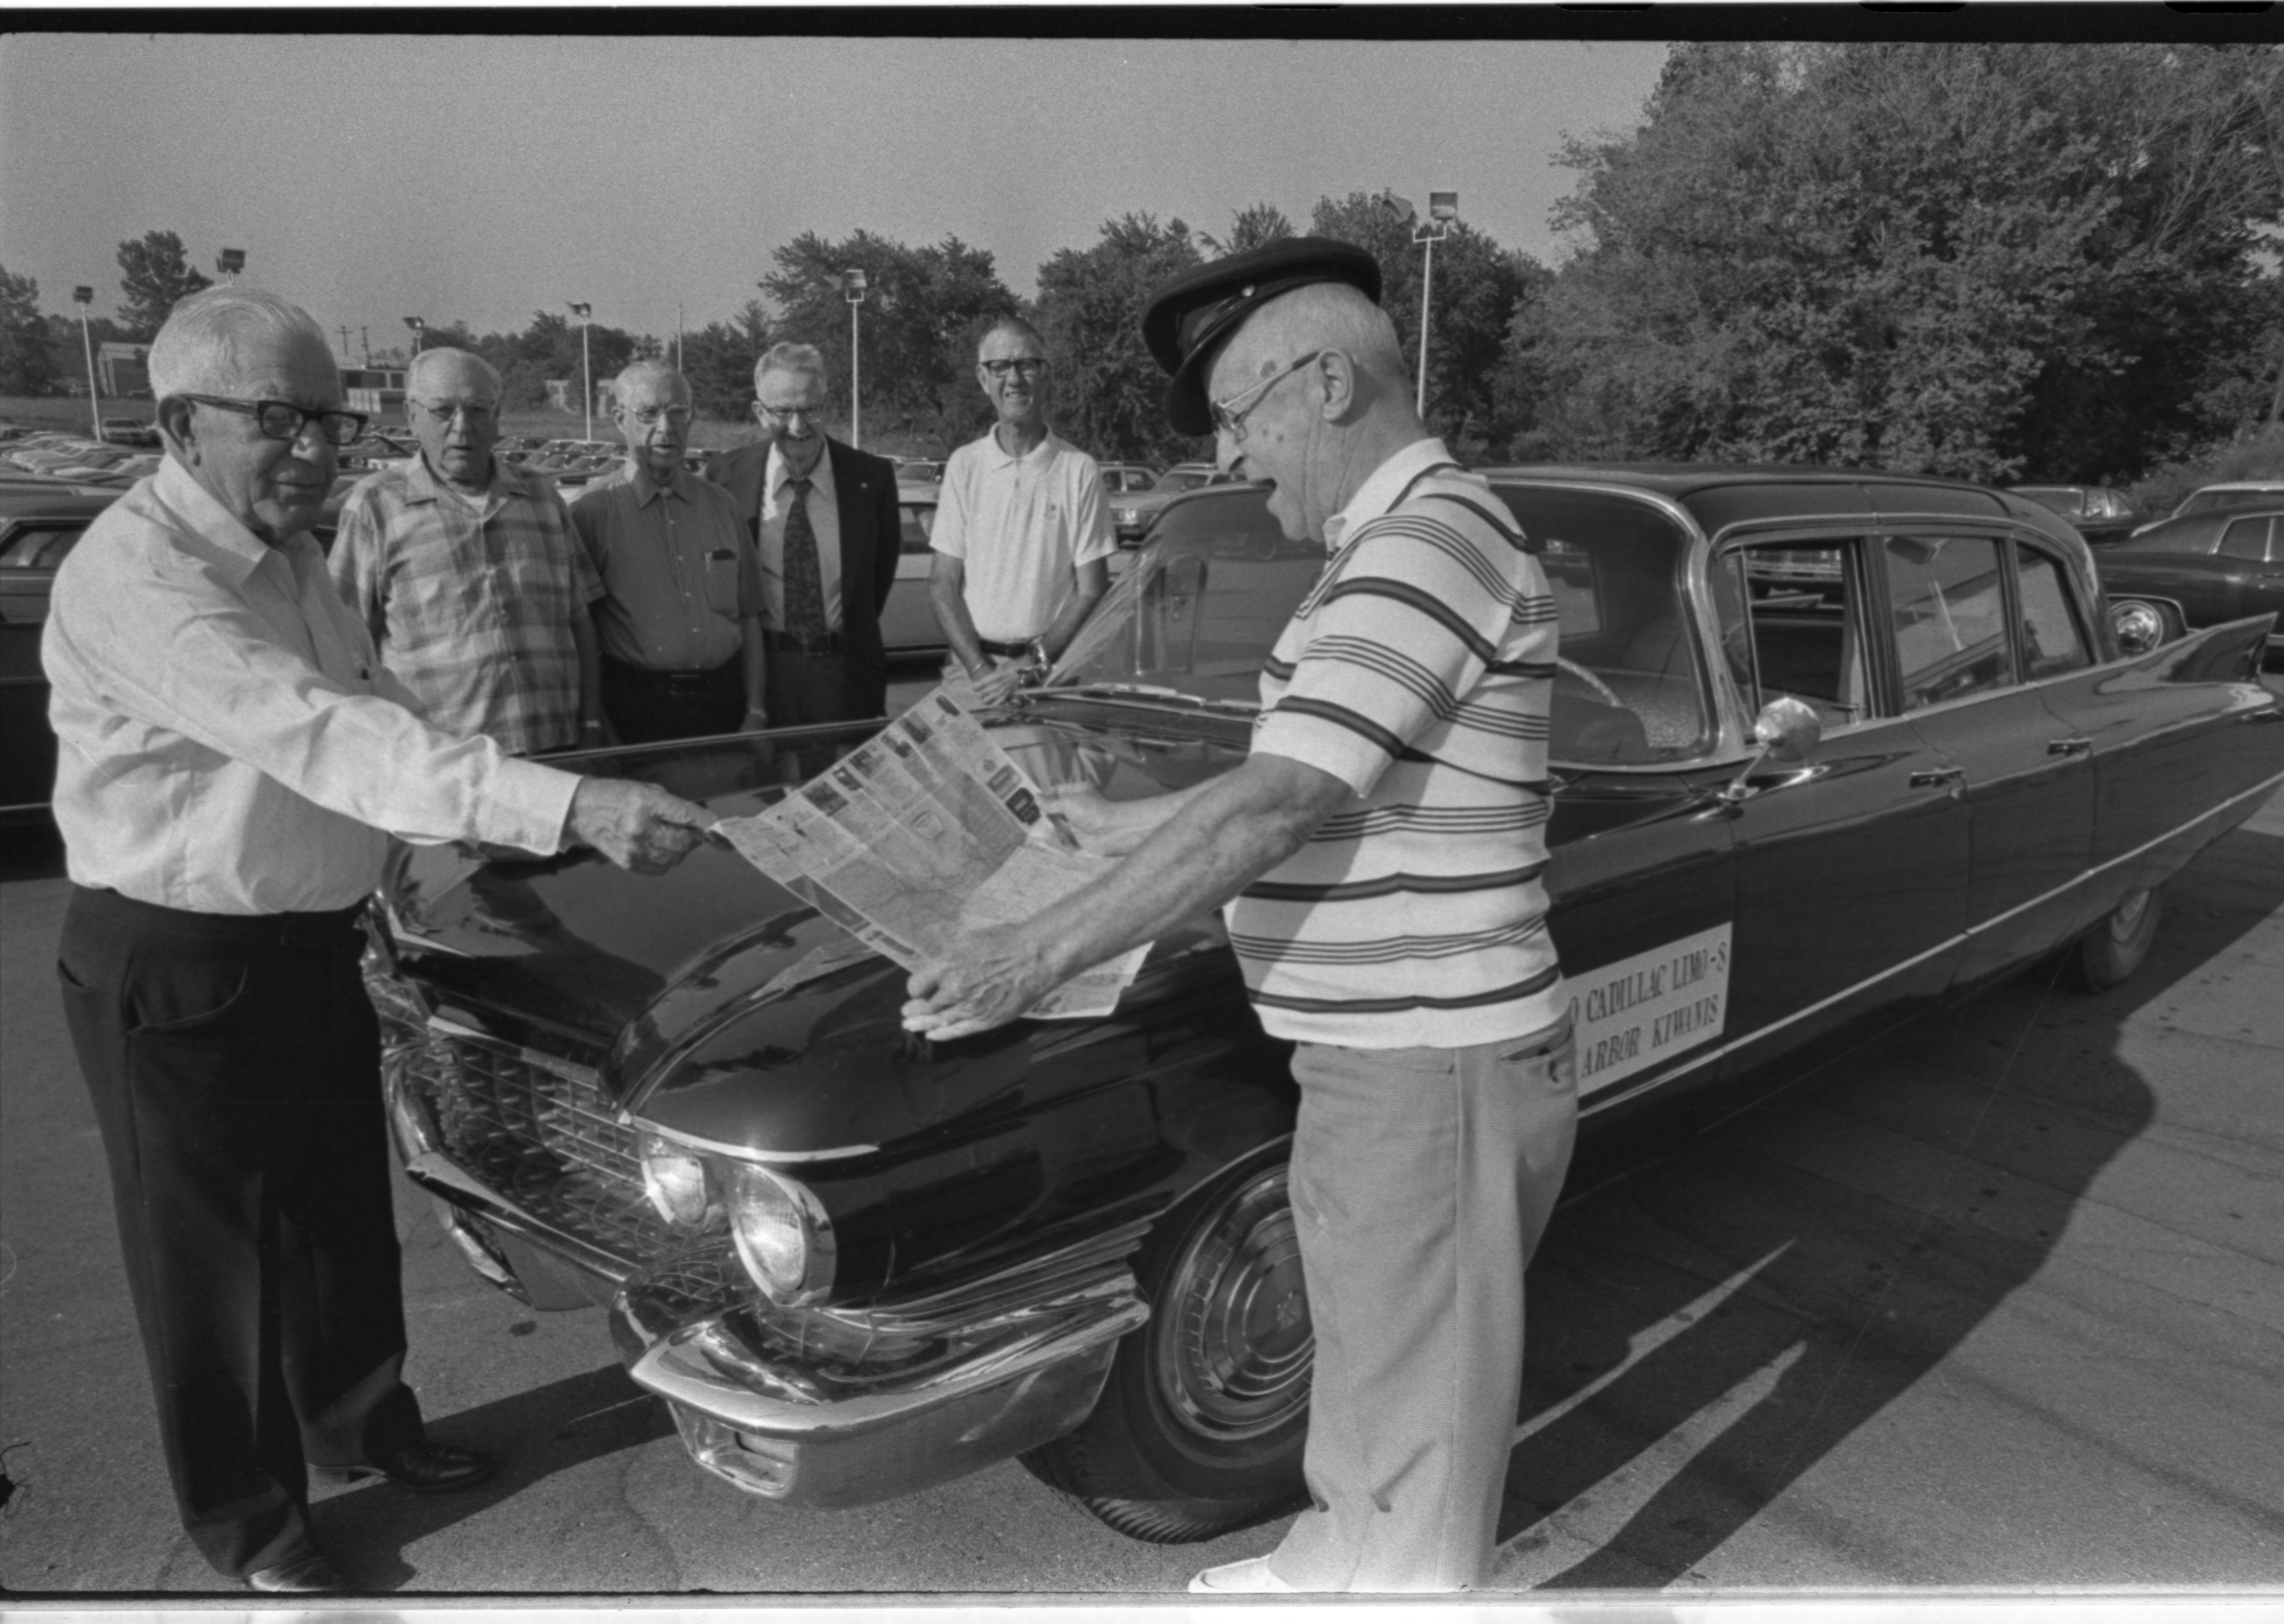 Kiwanis Club of Ann Arbor Members Travel In Style, August 1975 image